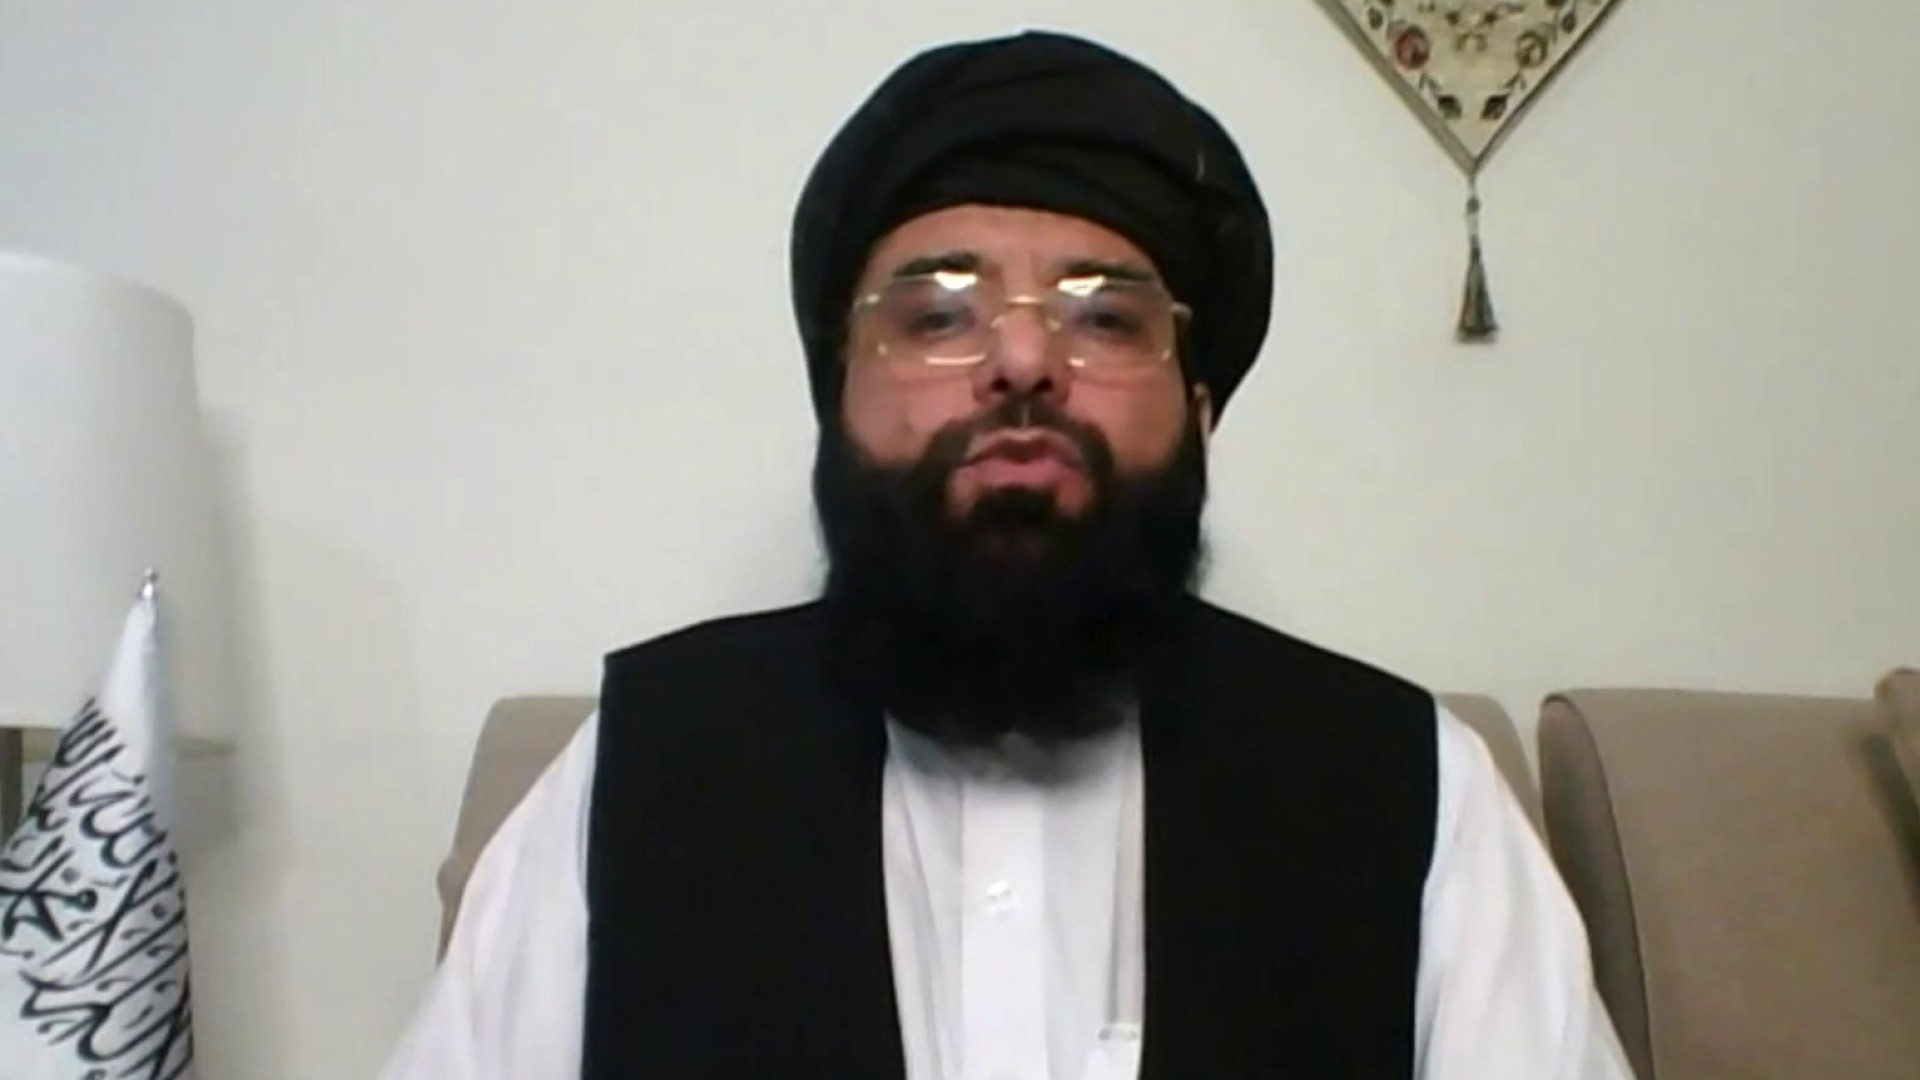 Taliban spokesperson claims reports of executions, forced marriages 'totally baseless'